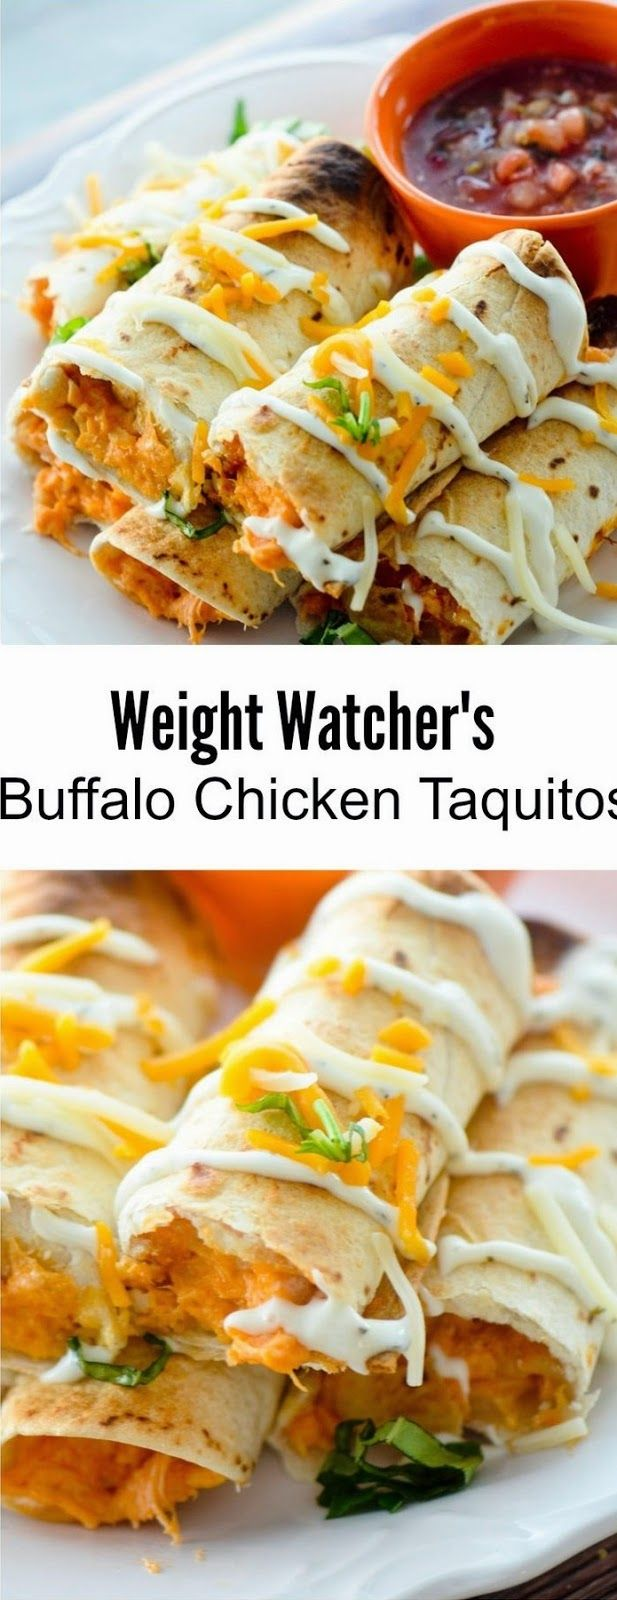 Baked Bufffalo Chicken Taquitos | Food'n Drink Recipes